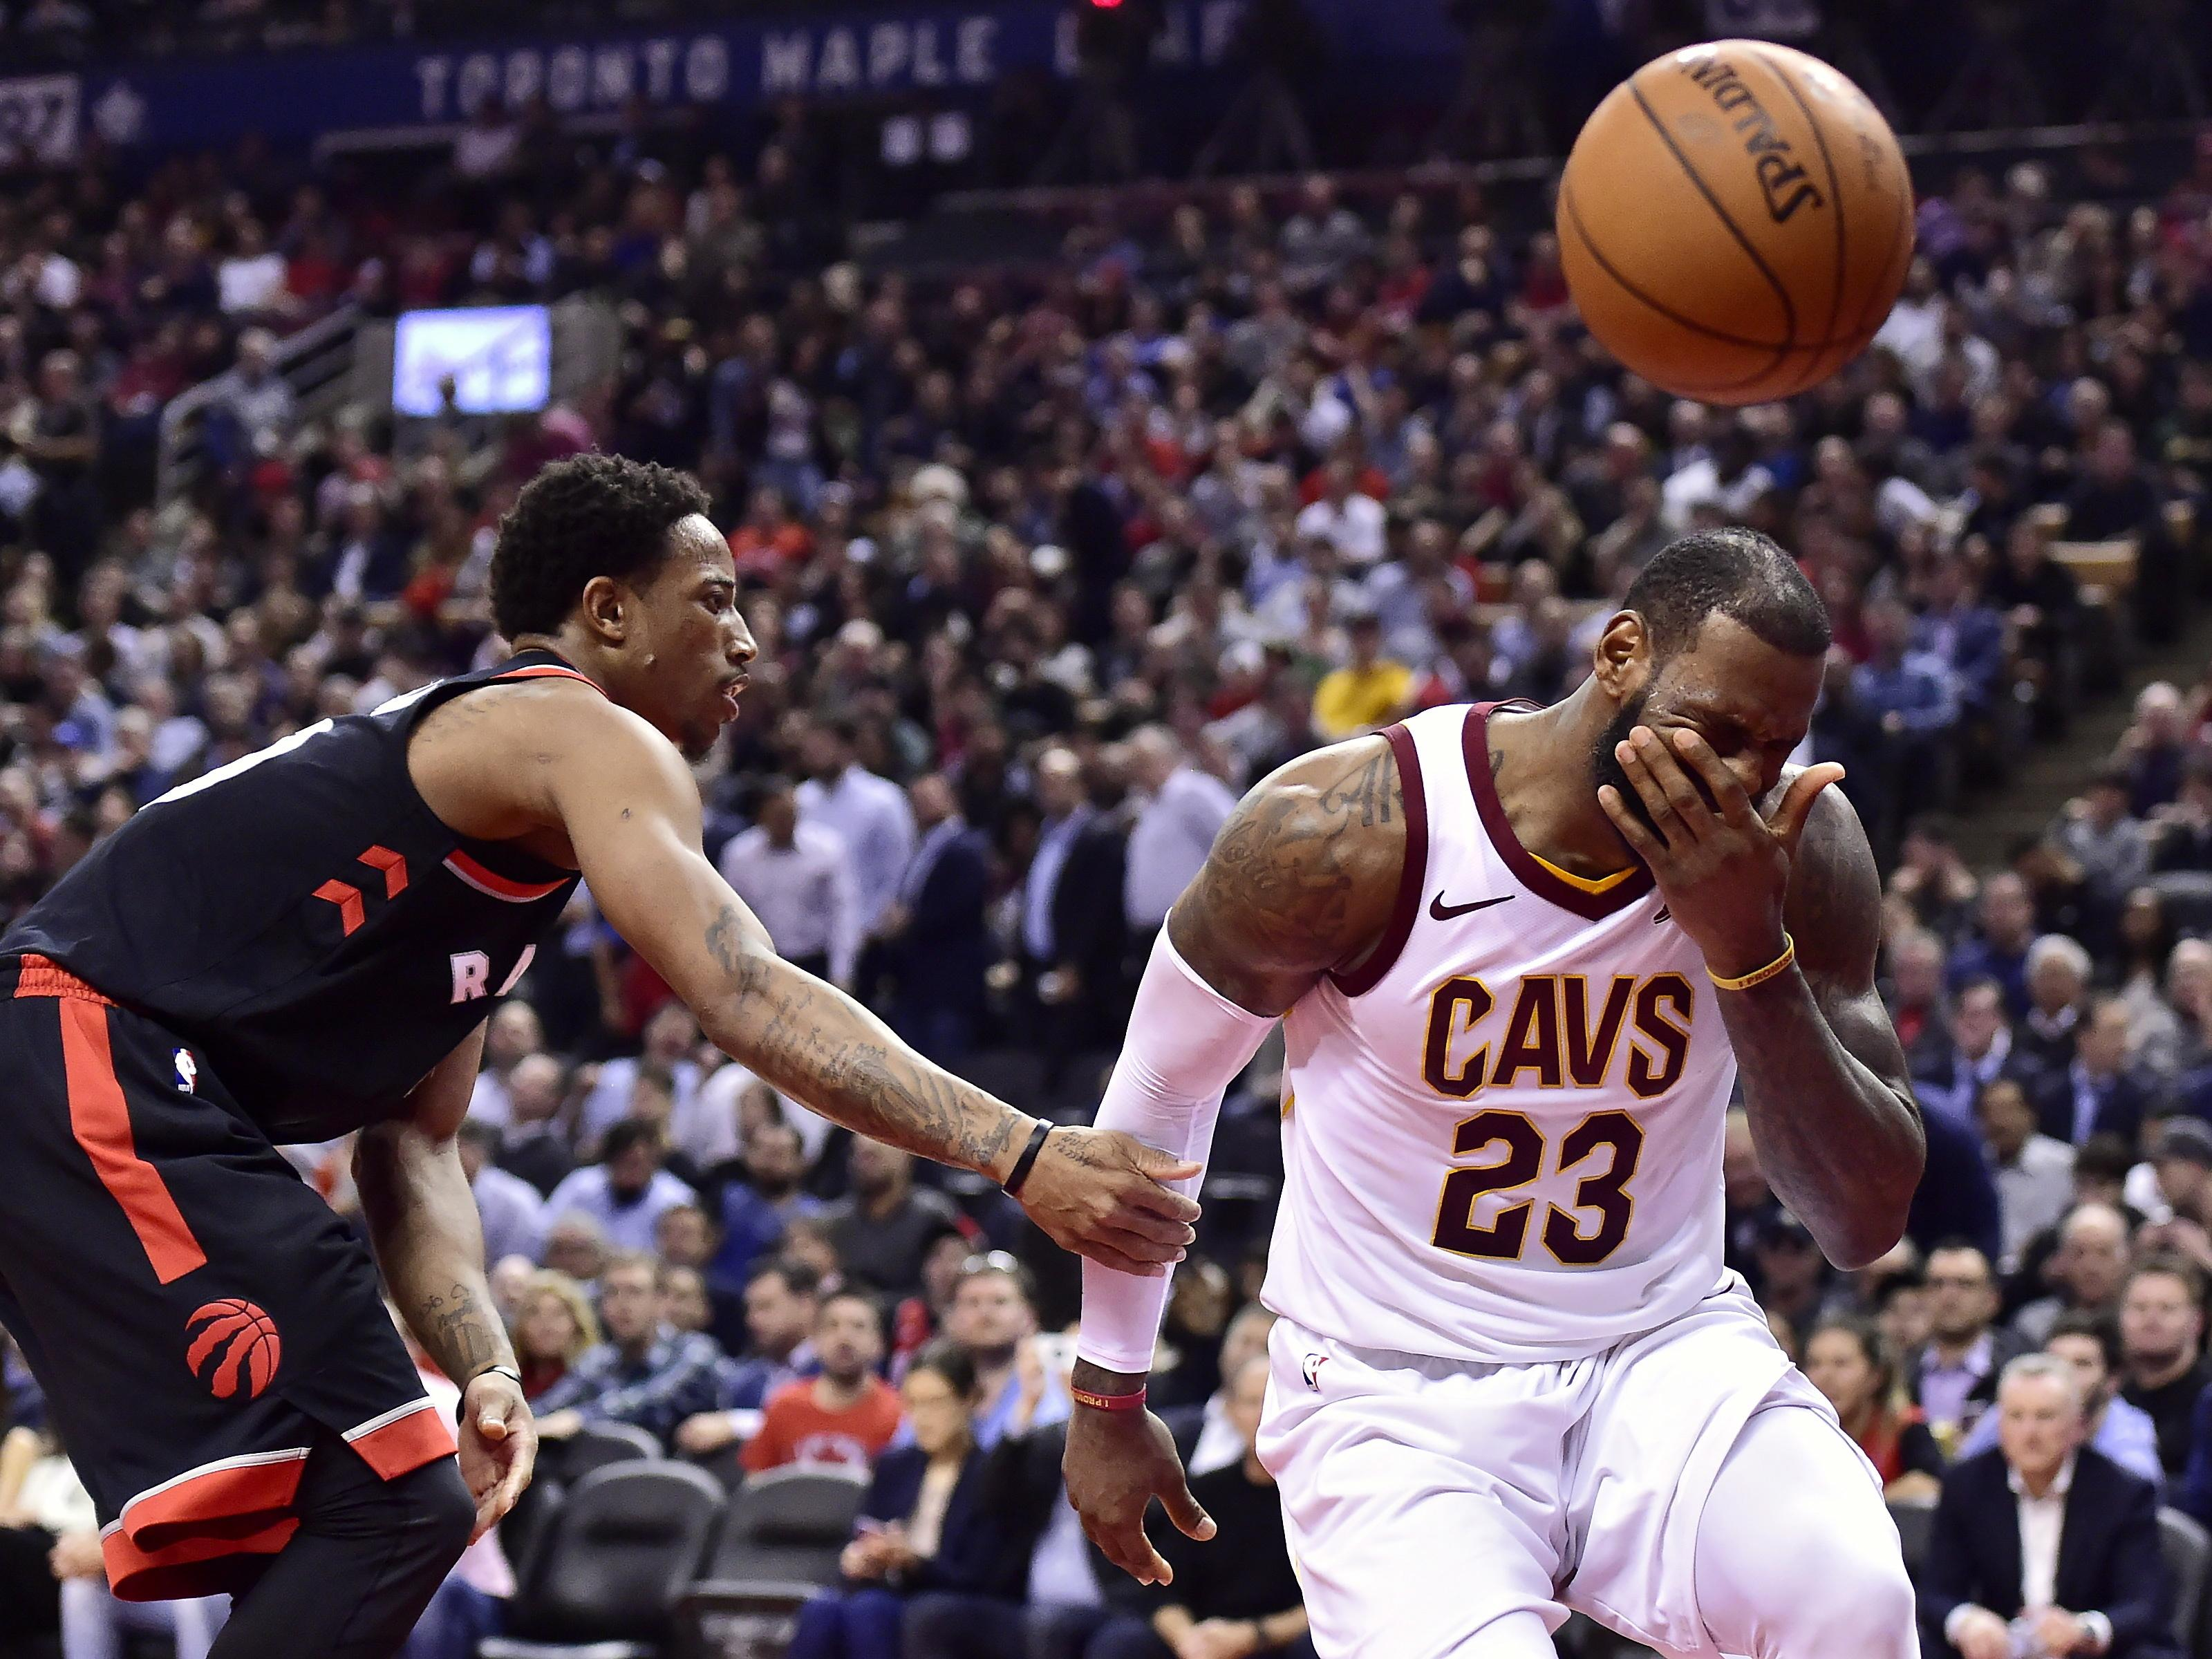 41658afb09d4 Cleveland Cavaliers forward LeBron James reacts after being fouled by  Toronto Raptors guard DeMar DeRozan